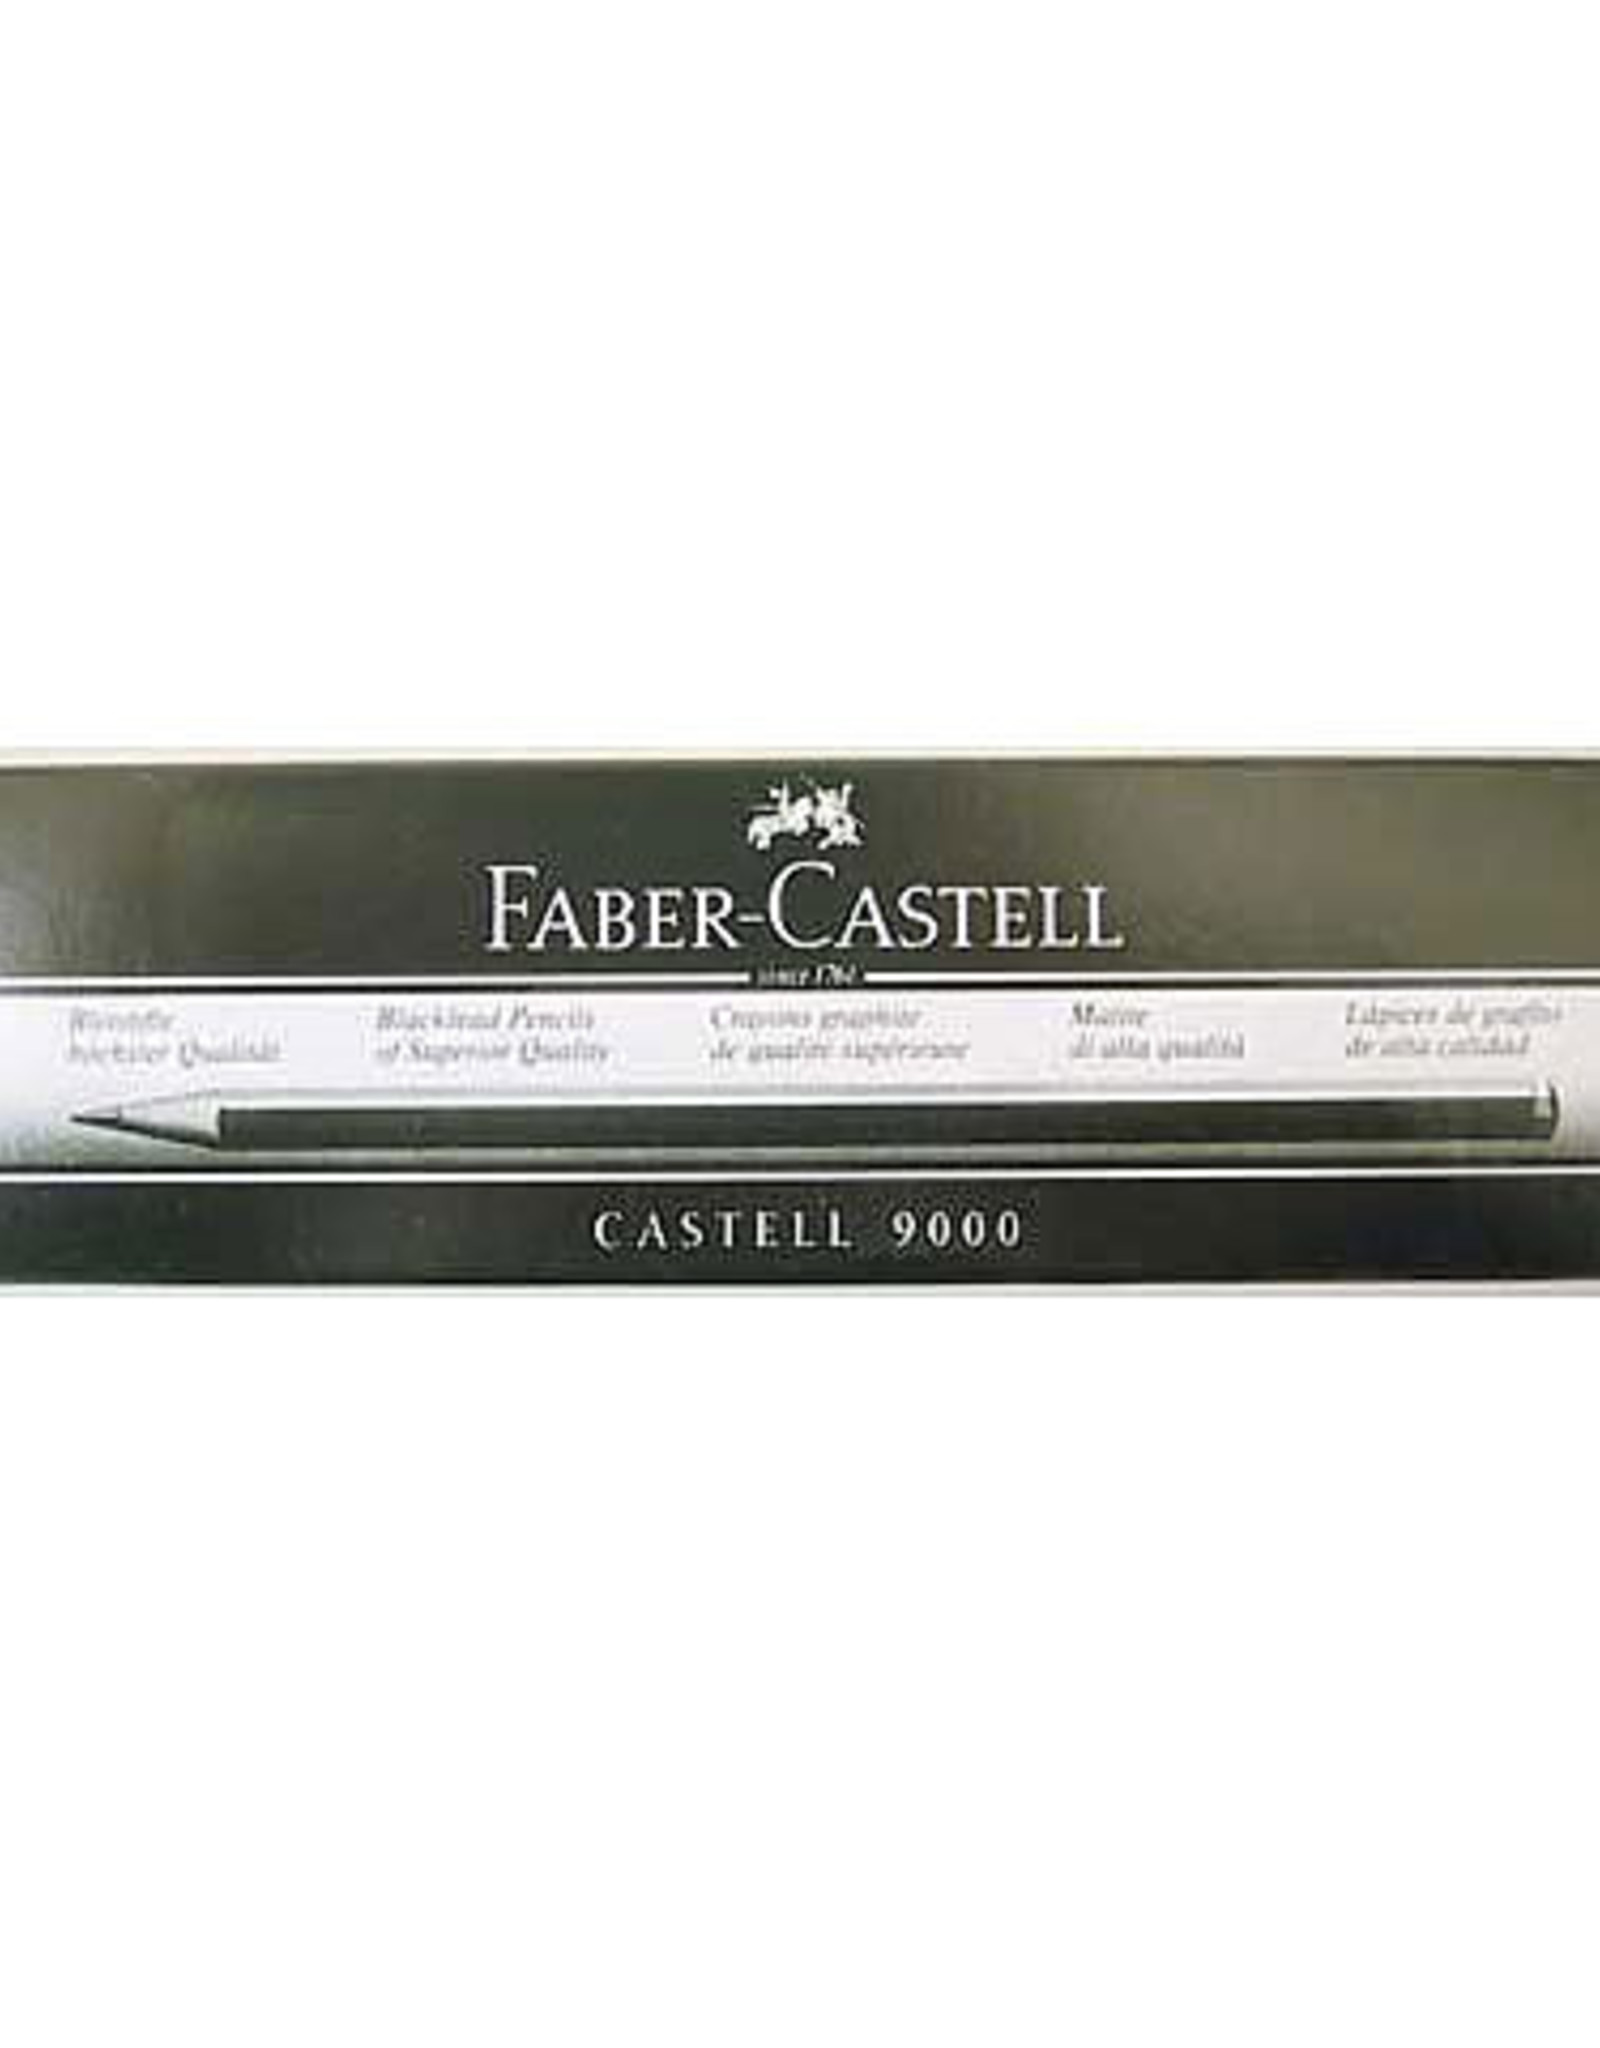 Faber-Castell Castell 9000 Drawing Pencils